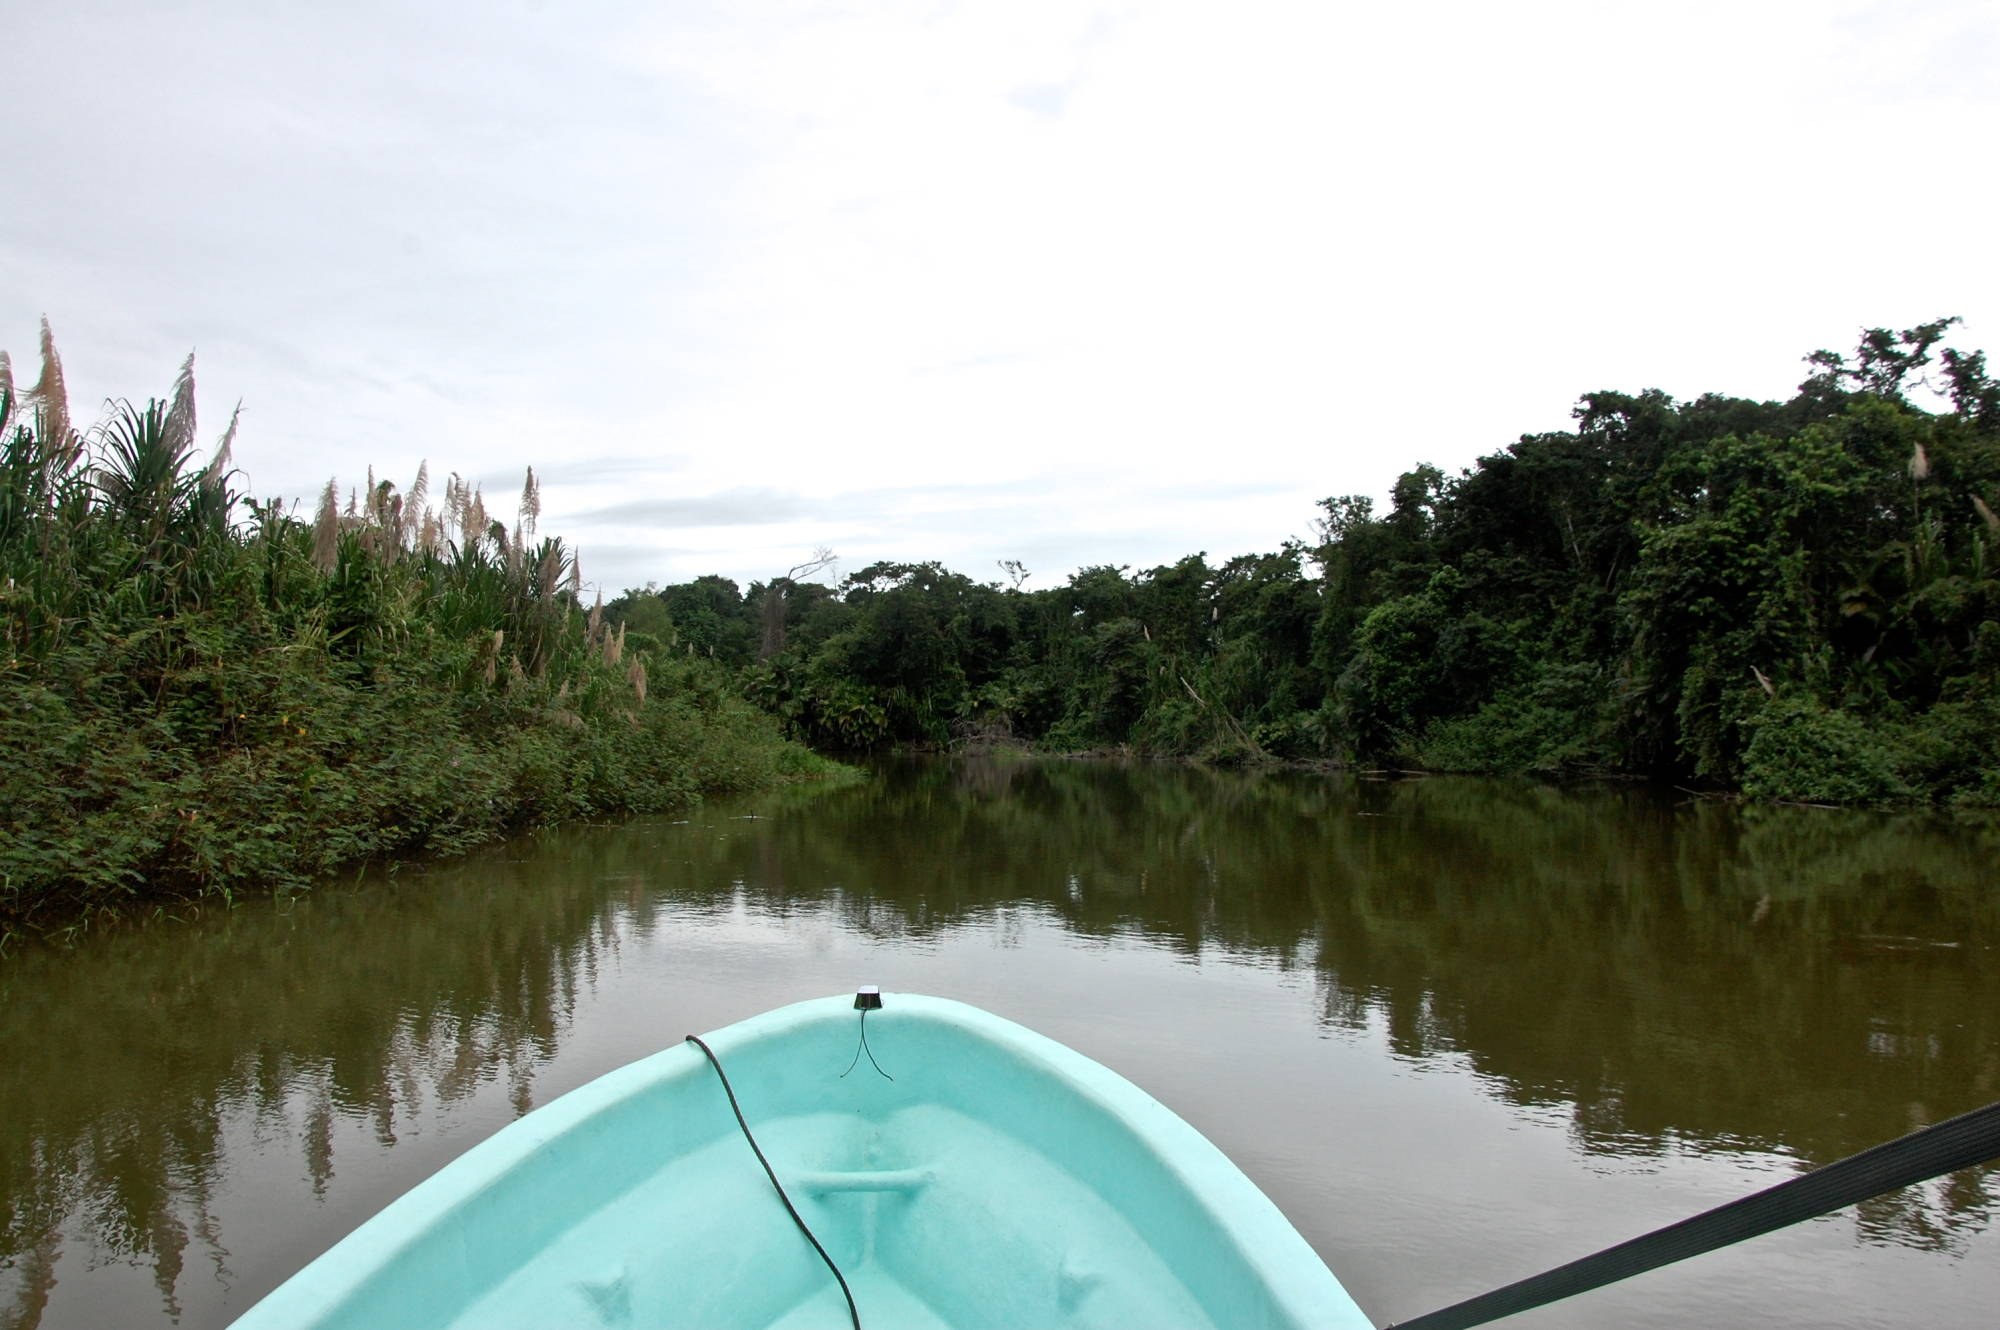 Cruising down the Monkey River